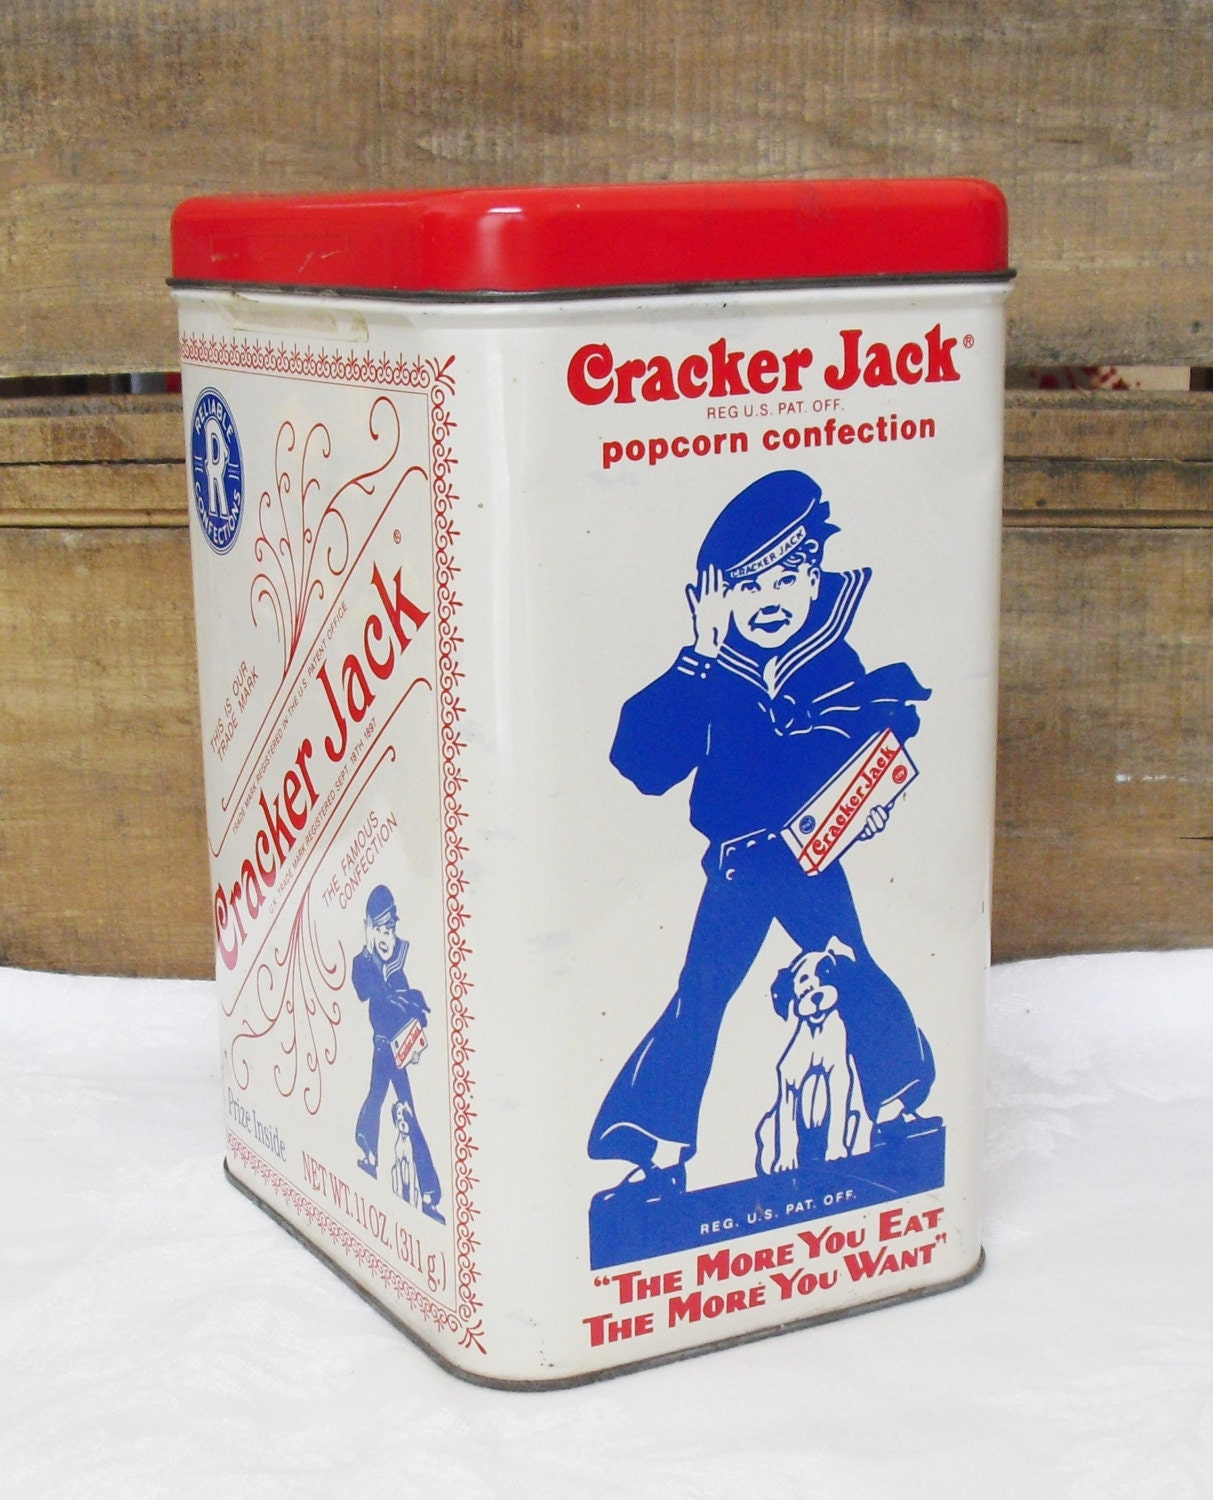 frito lay cracker jack case View notes - week 3 frito lay cracker jack case from mba 533 at maryland beauty acad of essex answer 1 the primary reason for the borden foods to divert itself from snacks is to focus its efforts.